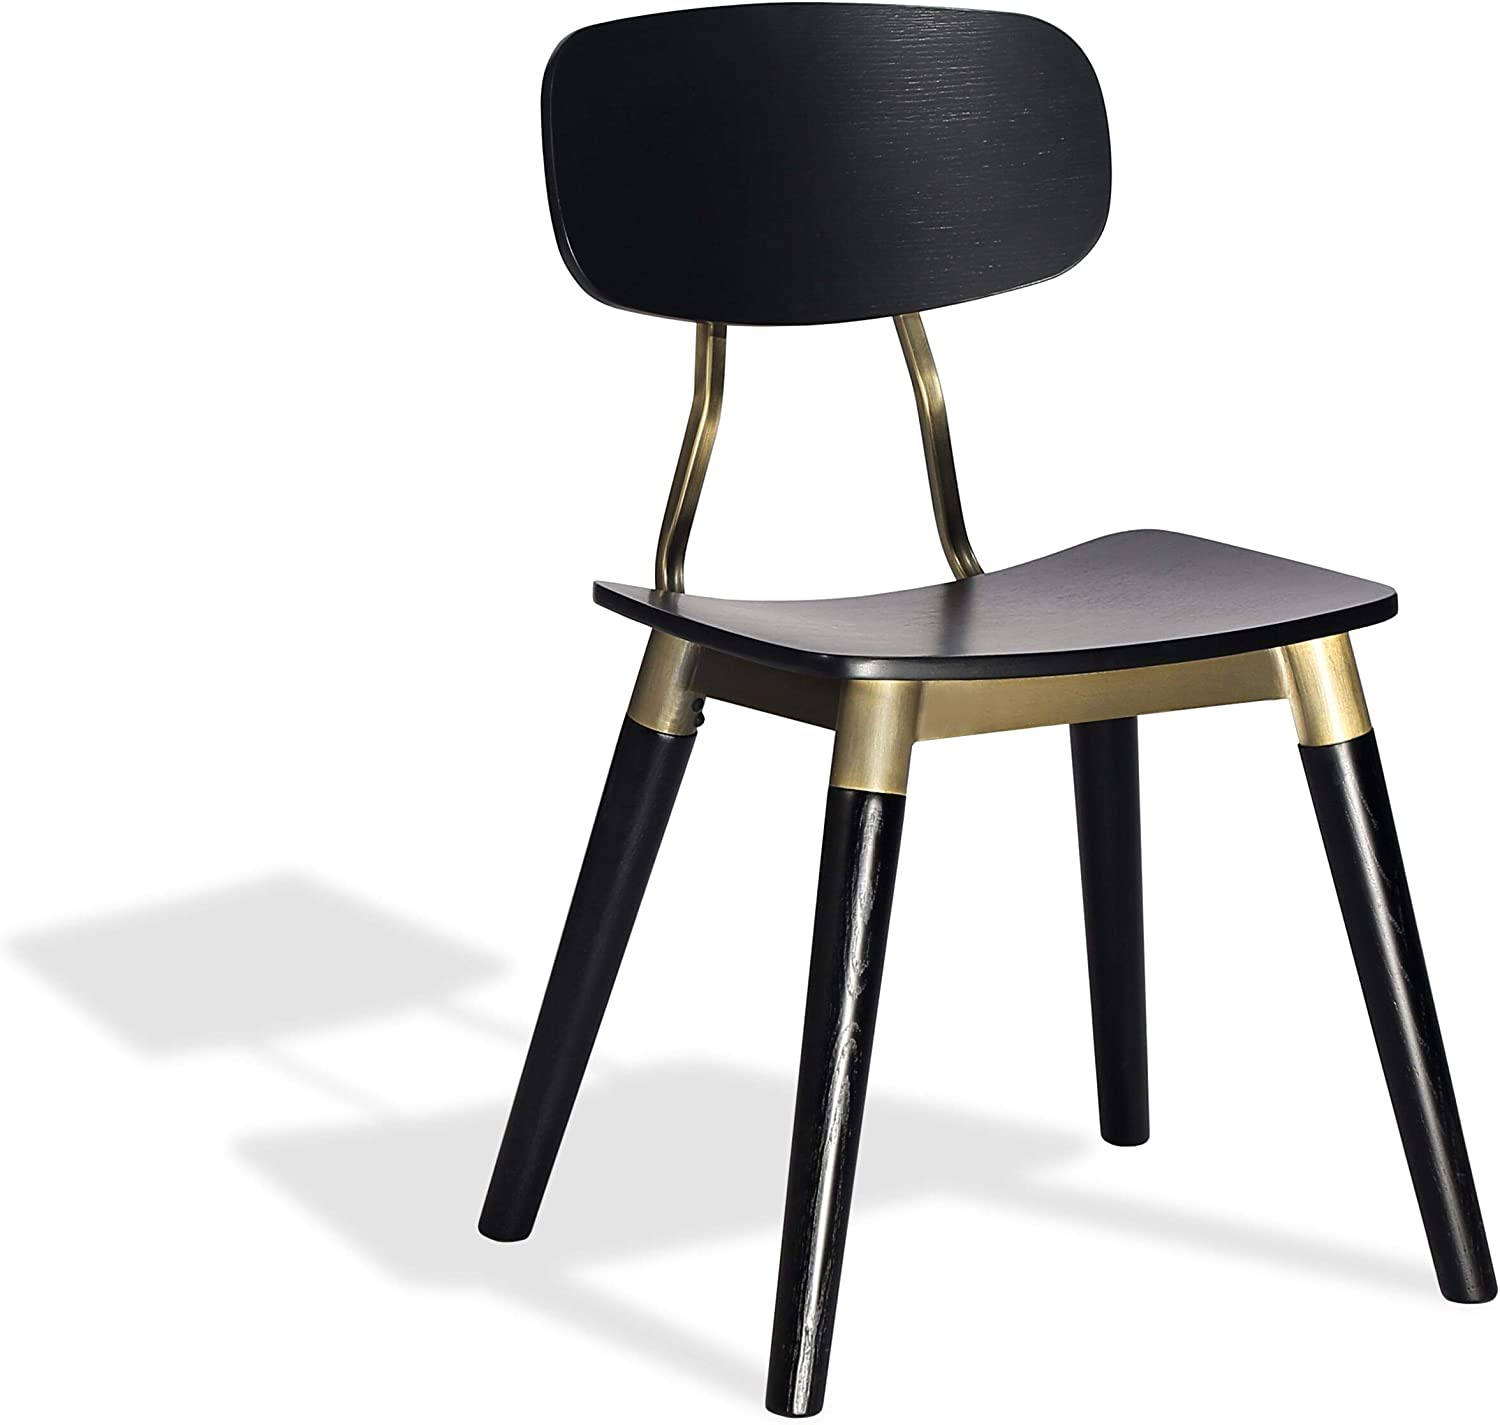 Harmony Modern Edna Wood Dining Chair in a Plywood Oak Black Veneer Seat with Solid Ash Black Finished Legs and Bronze Gold Frame